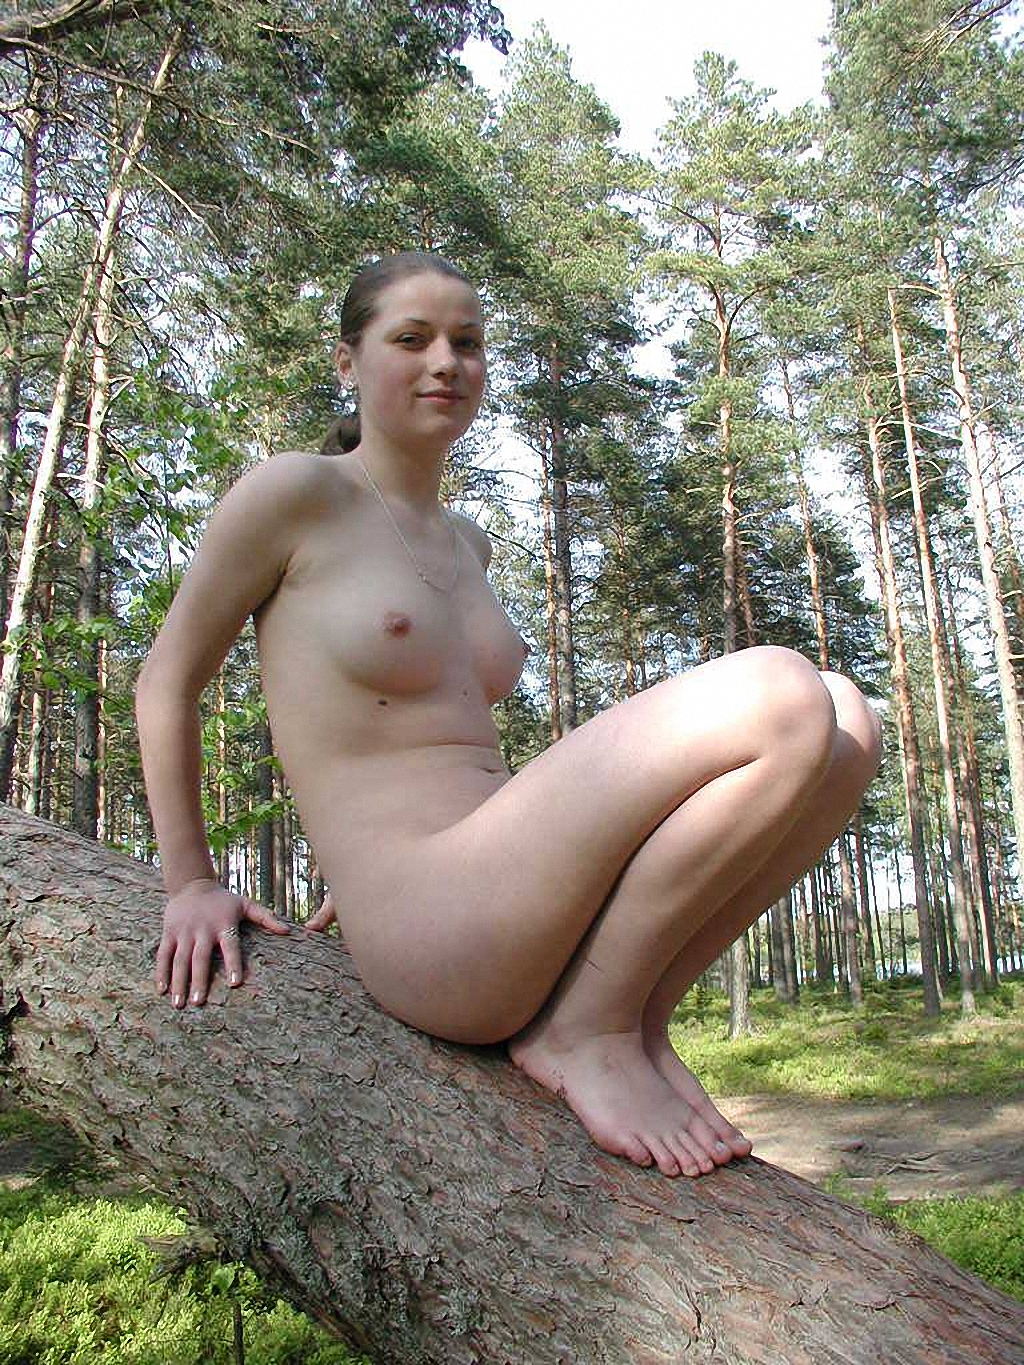 Russian girl naked at forest | Russian Sexy Girls